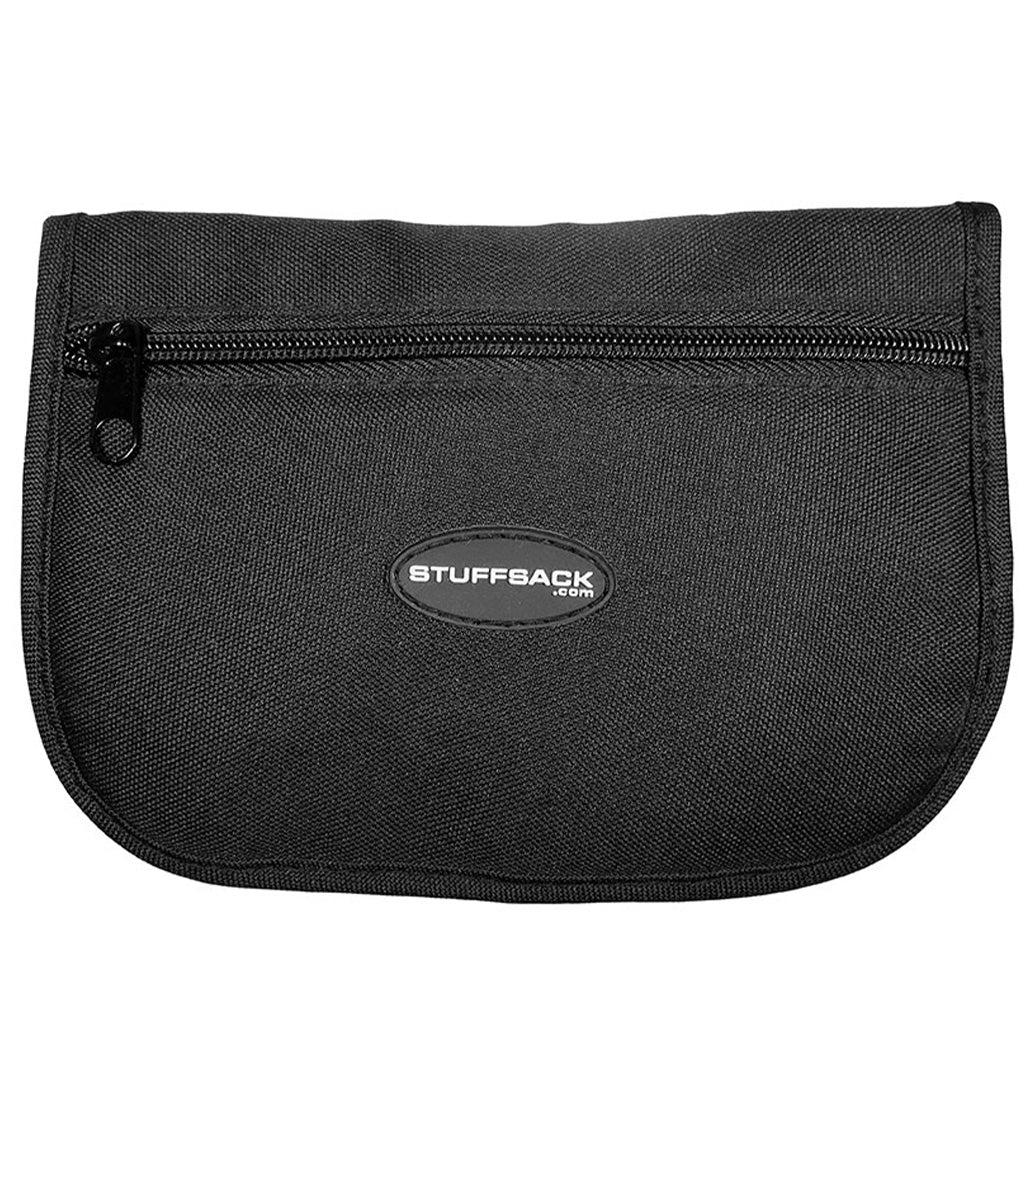 STUFFSACK.com Hip Concealment Bag